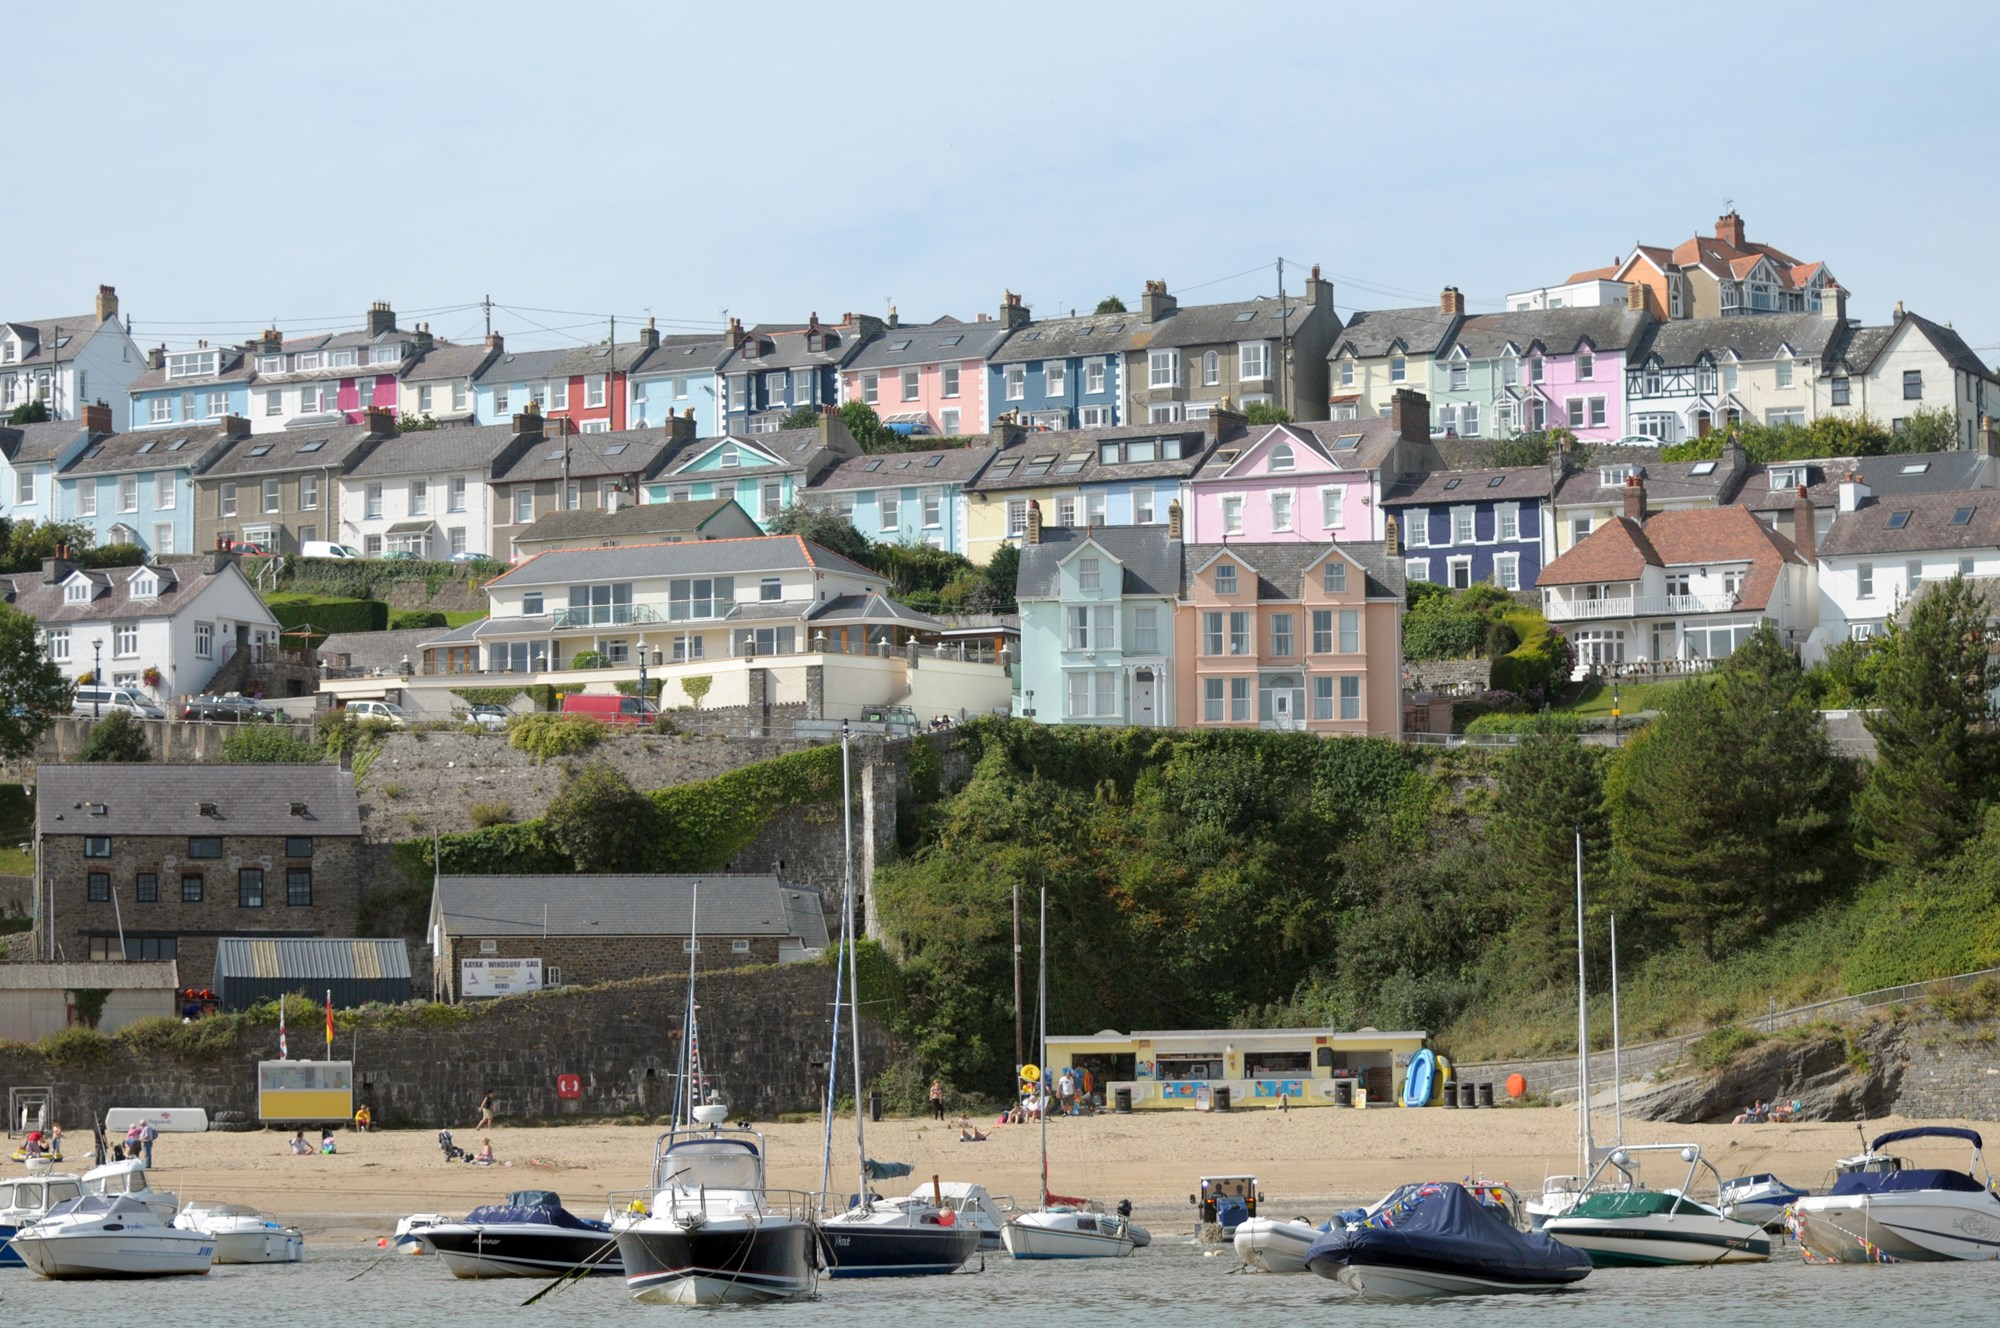 Terrace cottages above harbour at New Quay